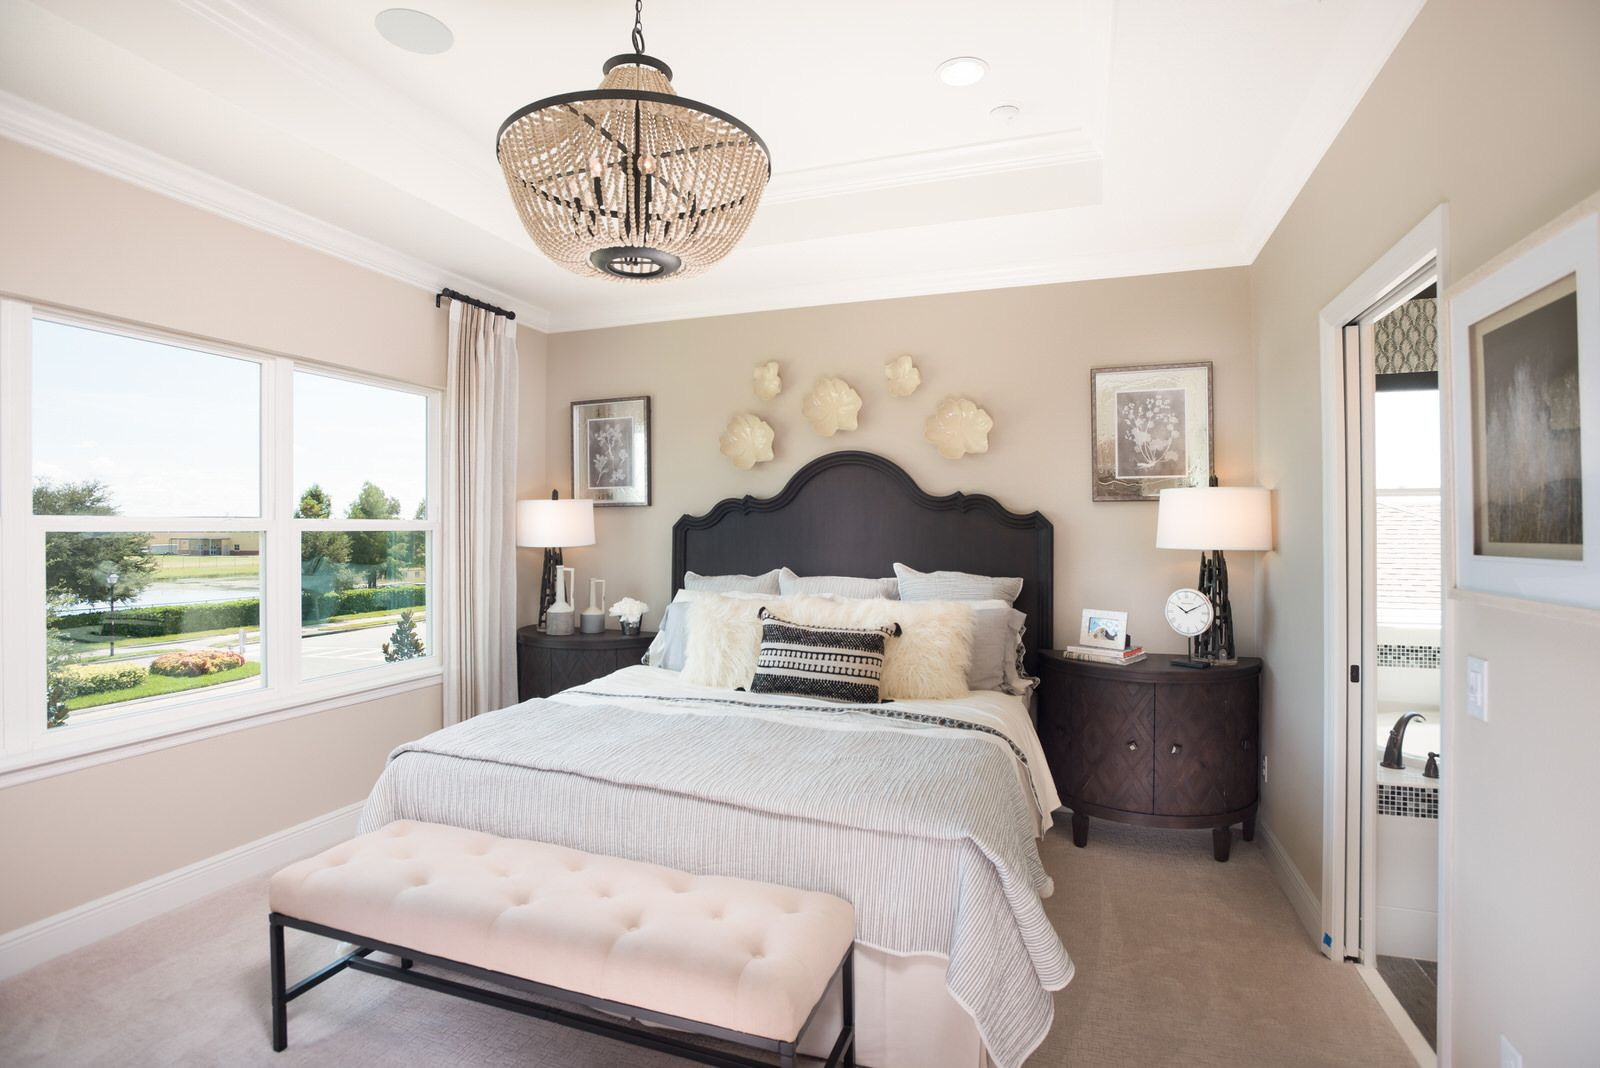 Bedroom featured in the Boca Grande By Taylor Morrison in Orlando, FL